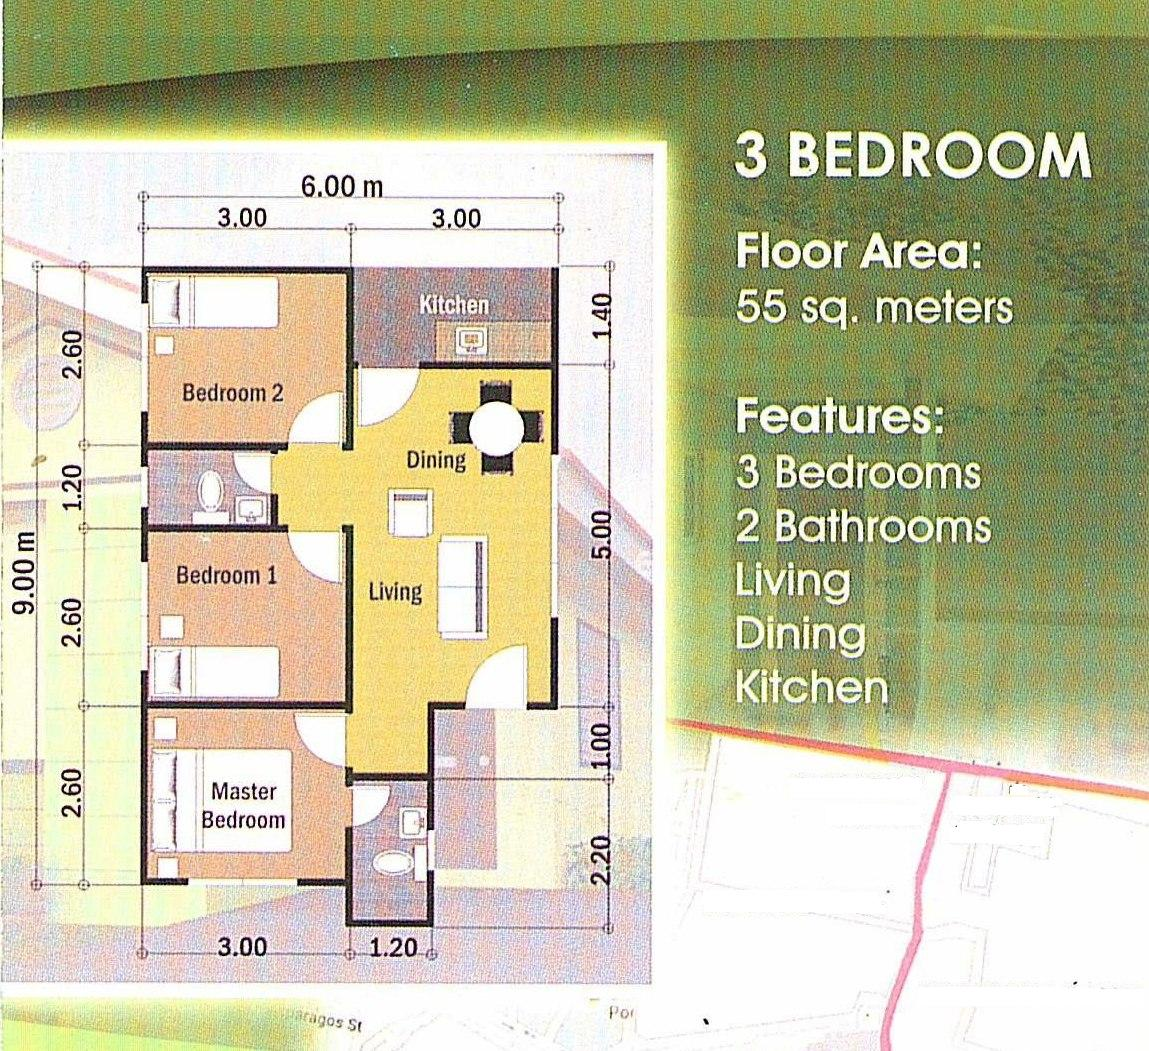 3 Bedroom House Designs And Floor Plans Philippines House Plans Philippines Photos Arts Inspirational Single Storey House With Stunning Interior Home Design Astela Residences For Sale Residences In Astela For Sale In